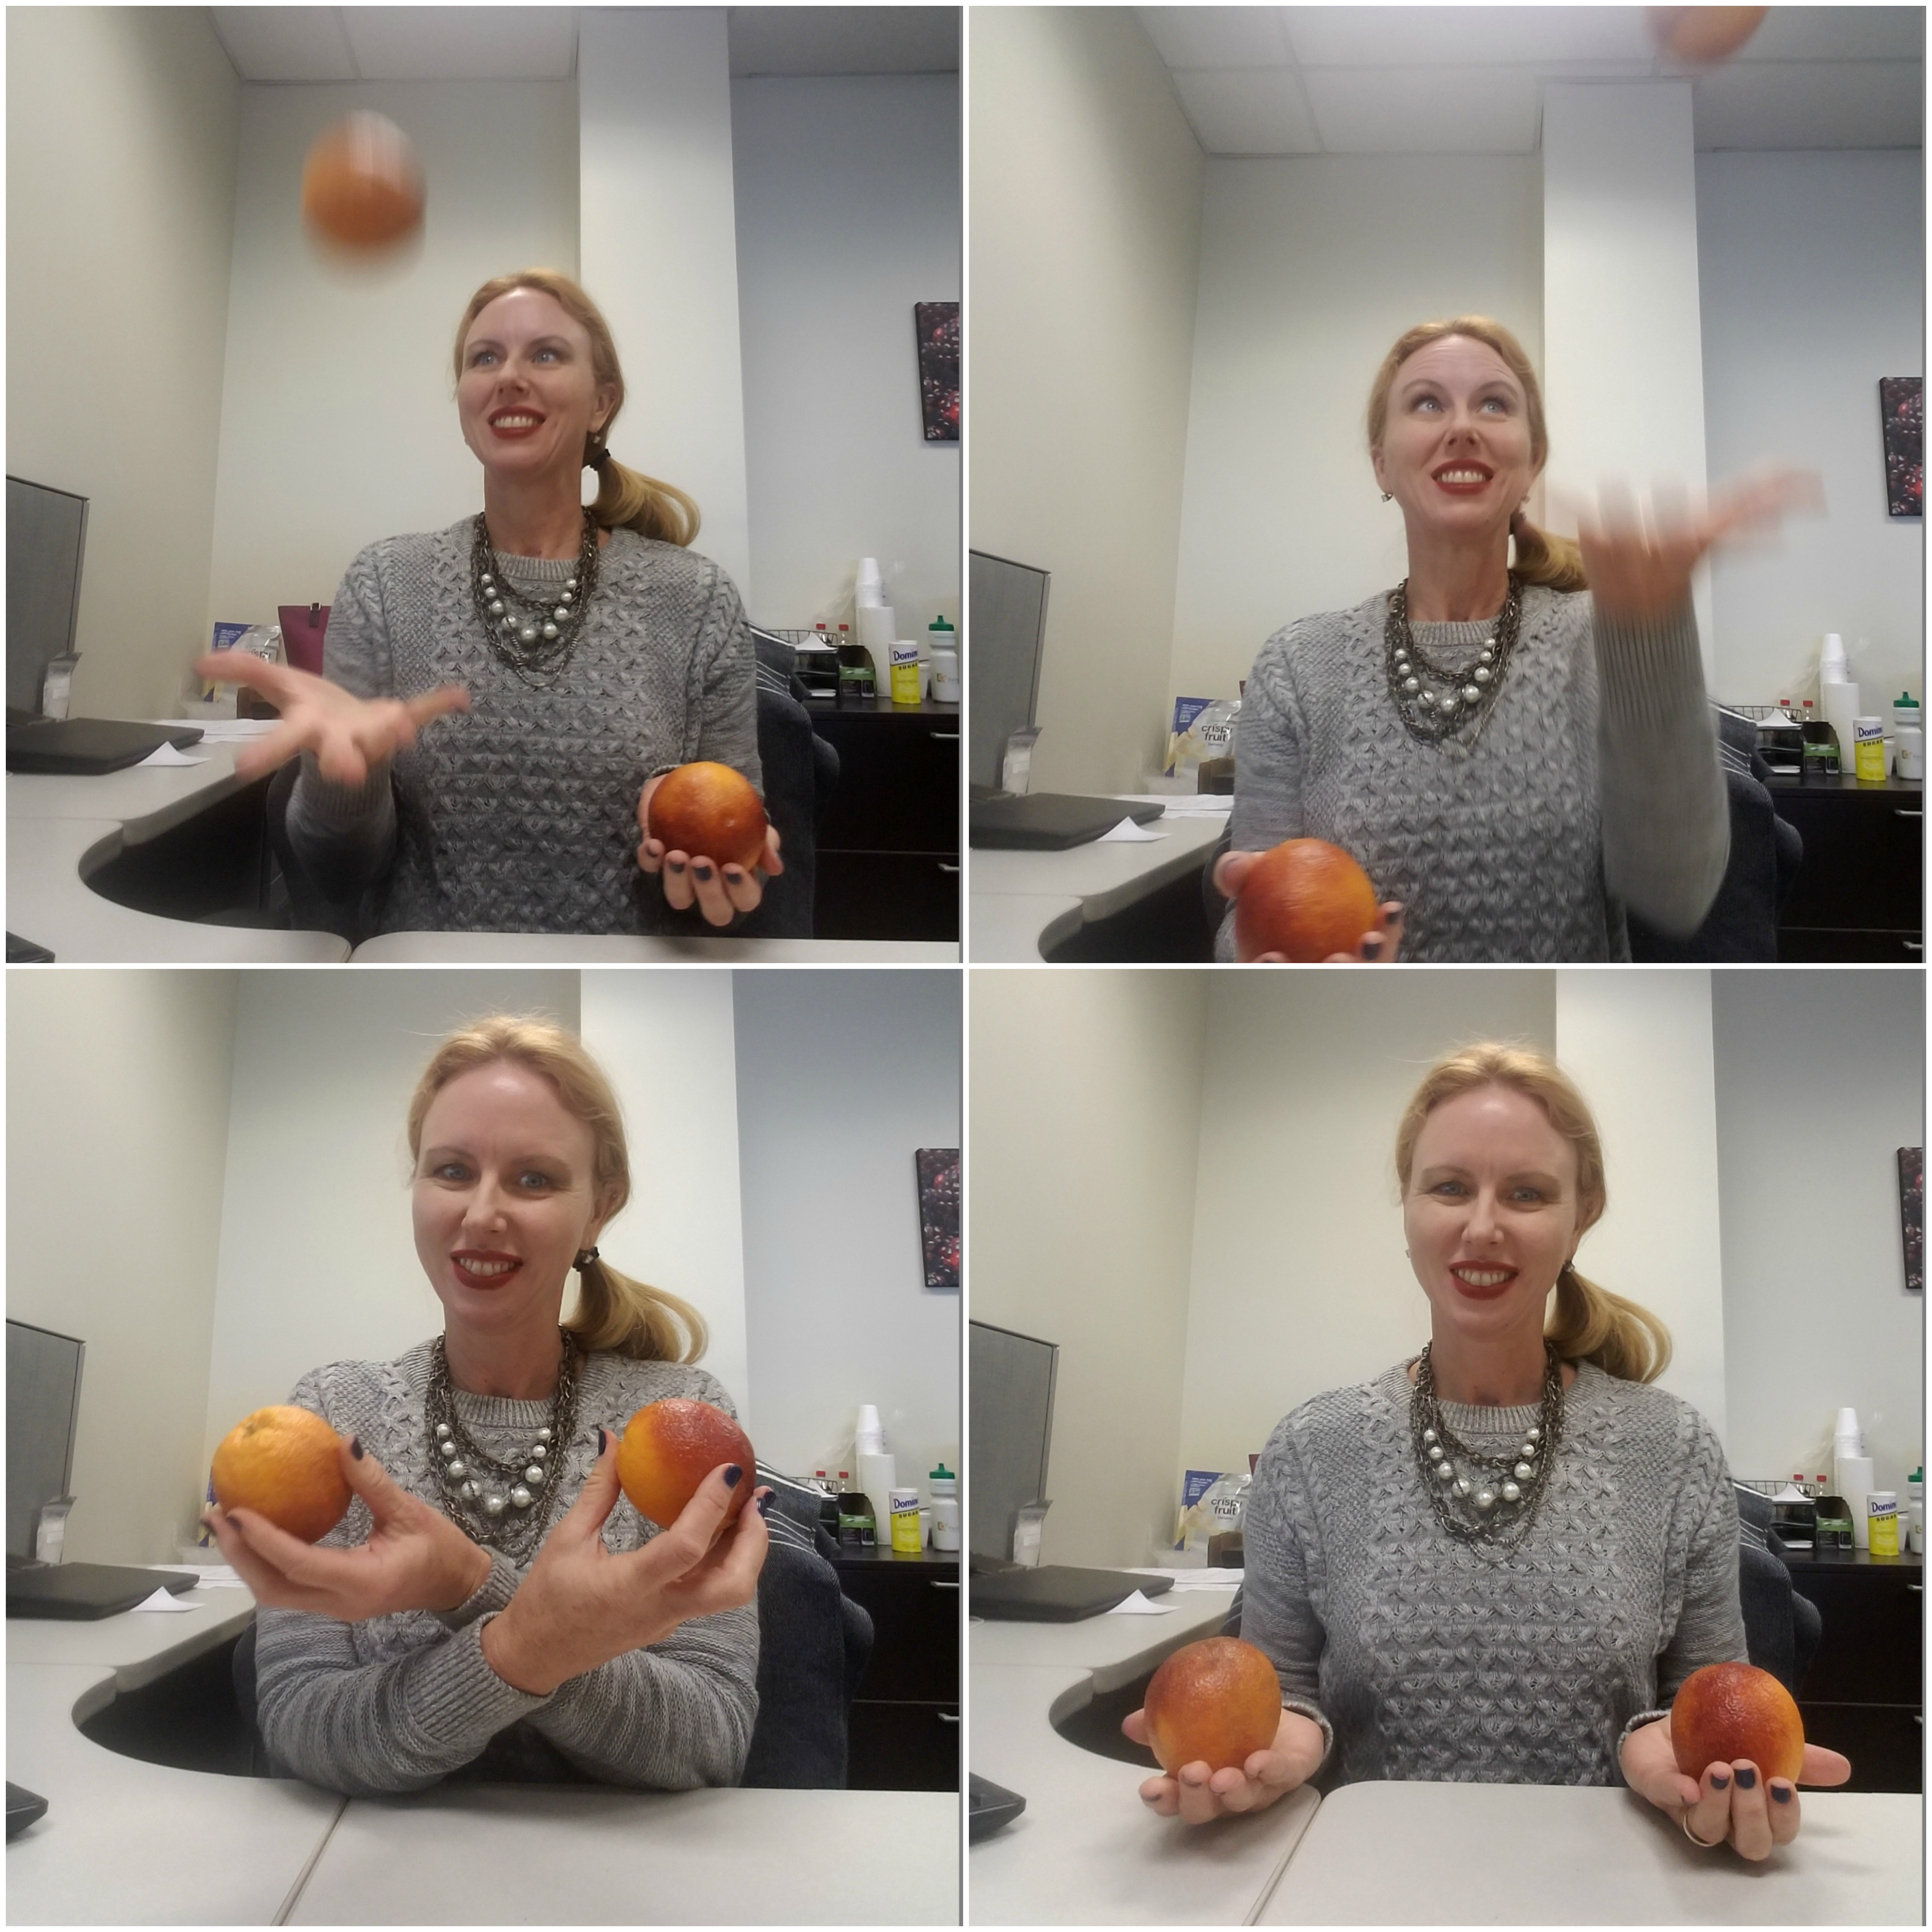 We asked Francy to talk about blood oranges. We had no idea she could juggle, or that she would send us pictures of her juggling, and this is why we love her.